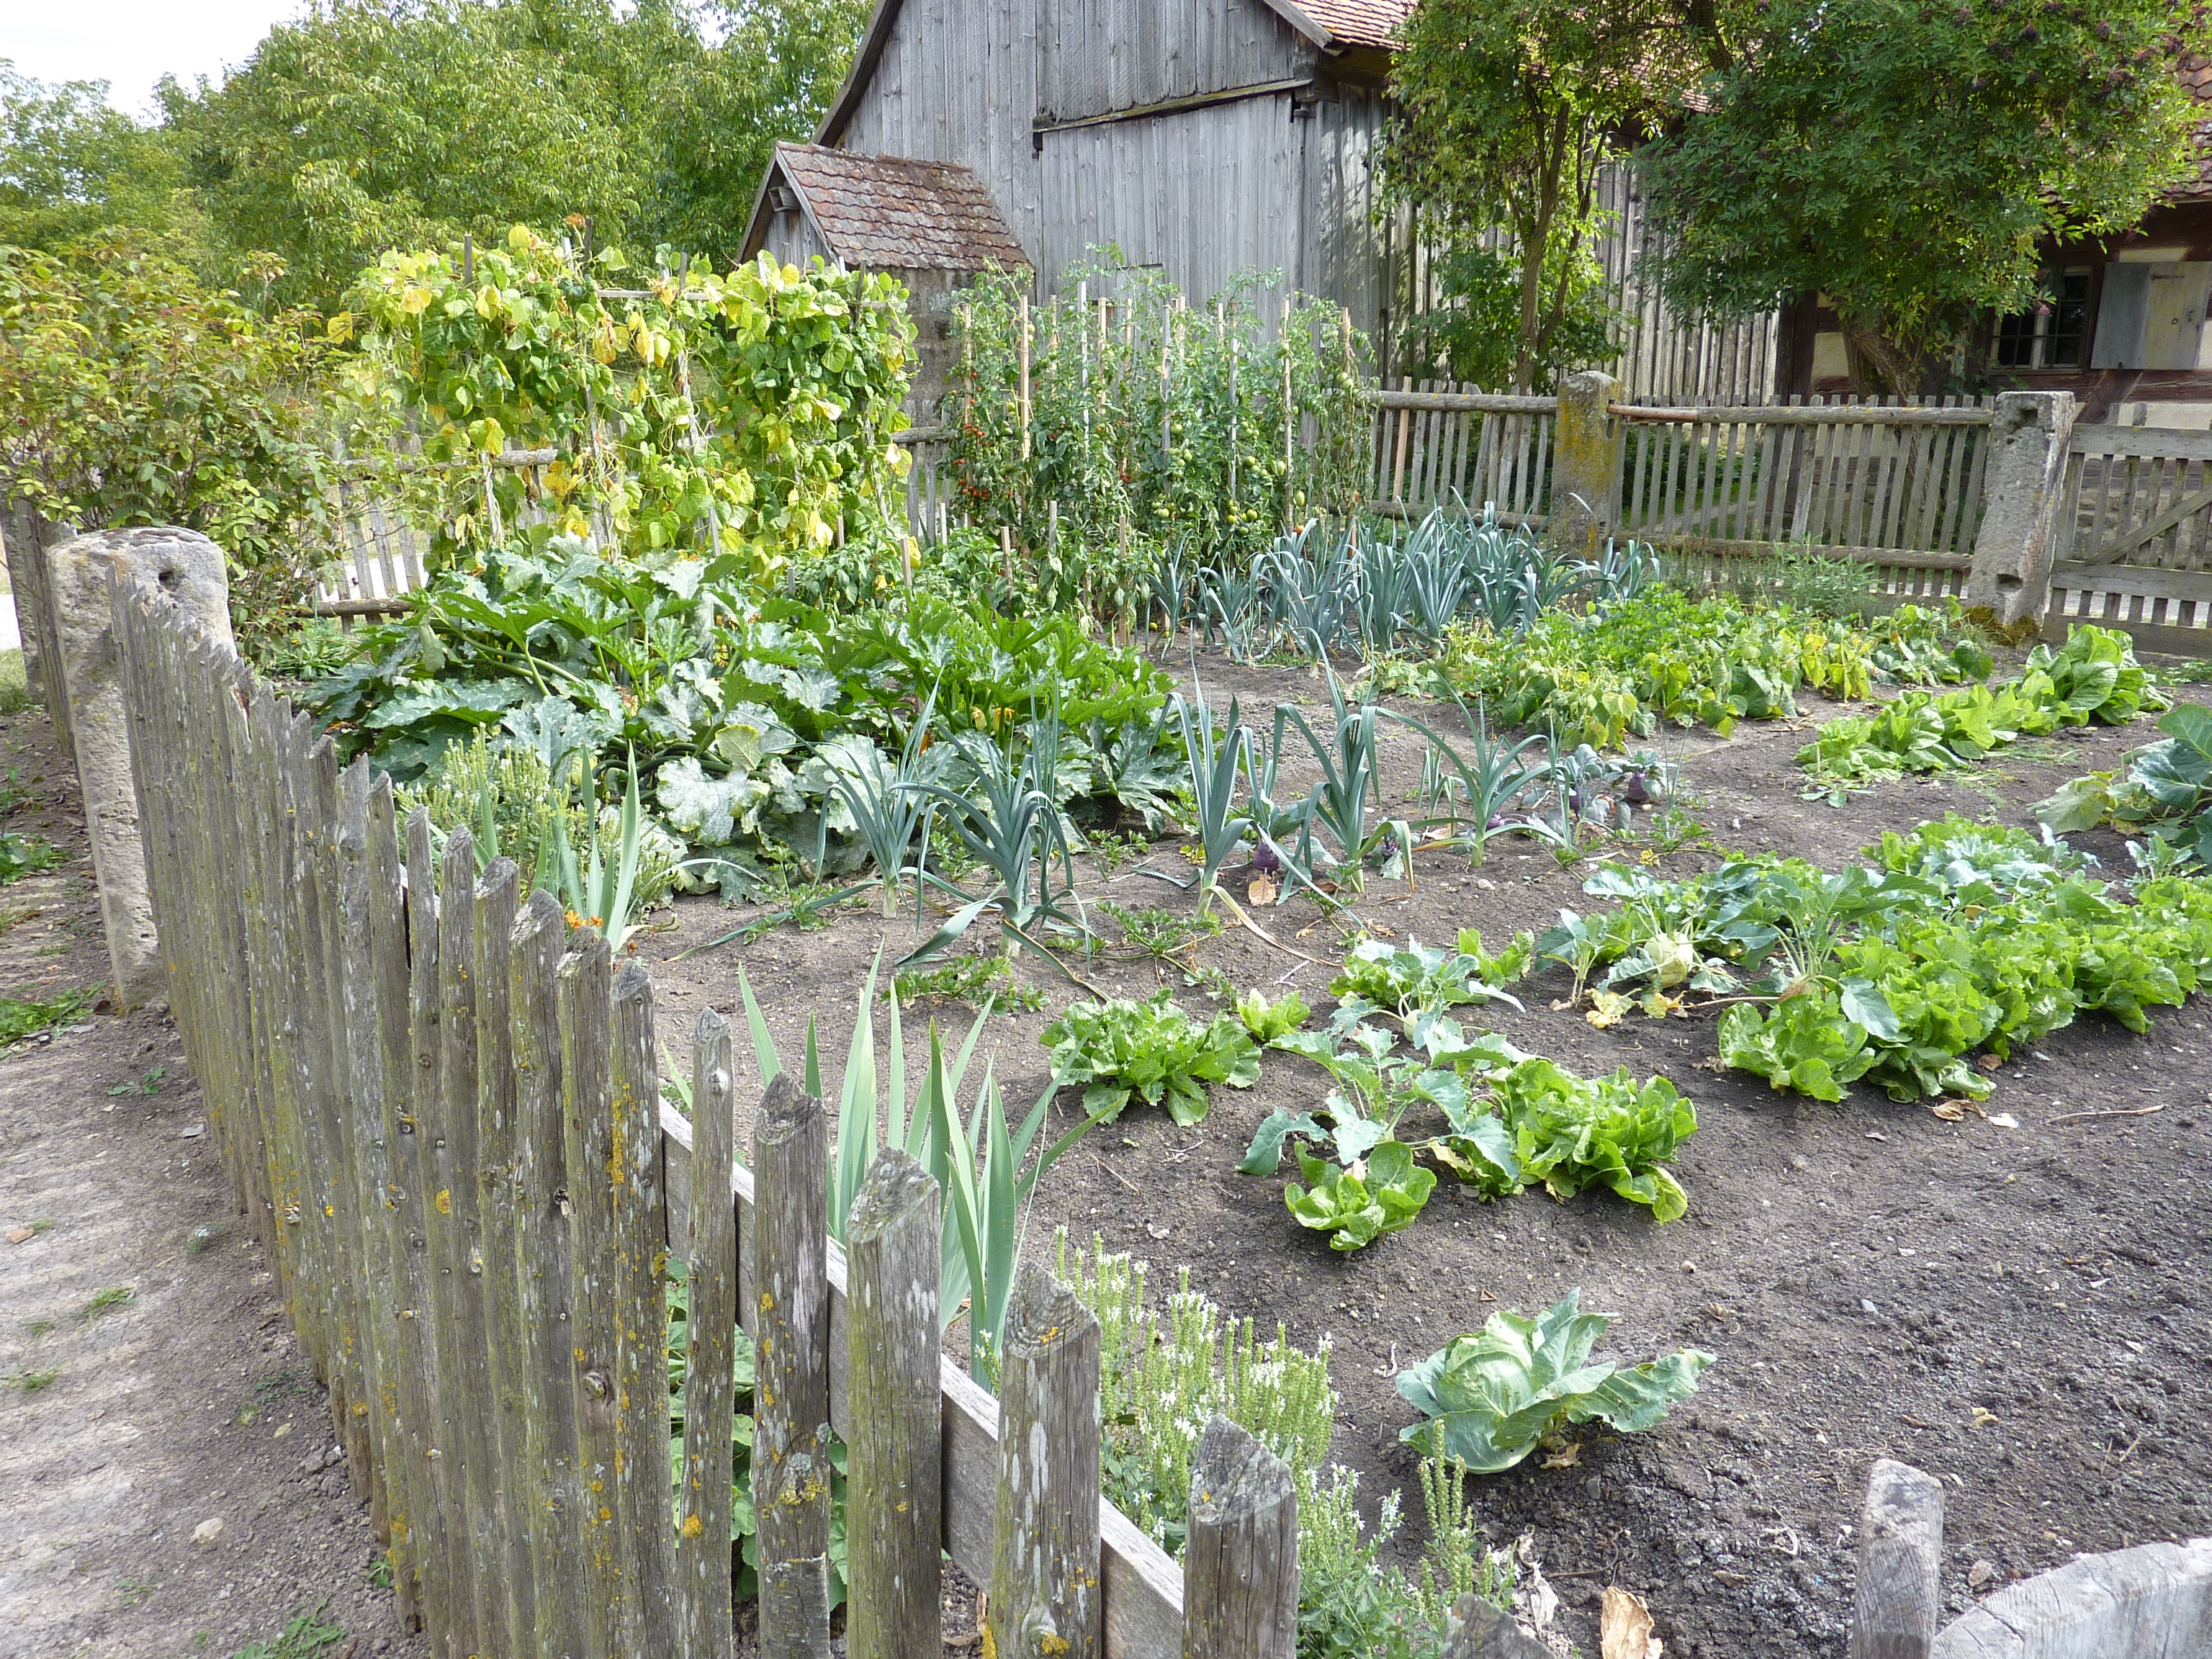 Etonnant Vegetable Garden Planning For Beginners ~ Great Resource.  Vegetable_gardening_for_beginners